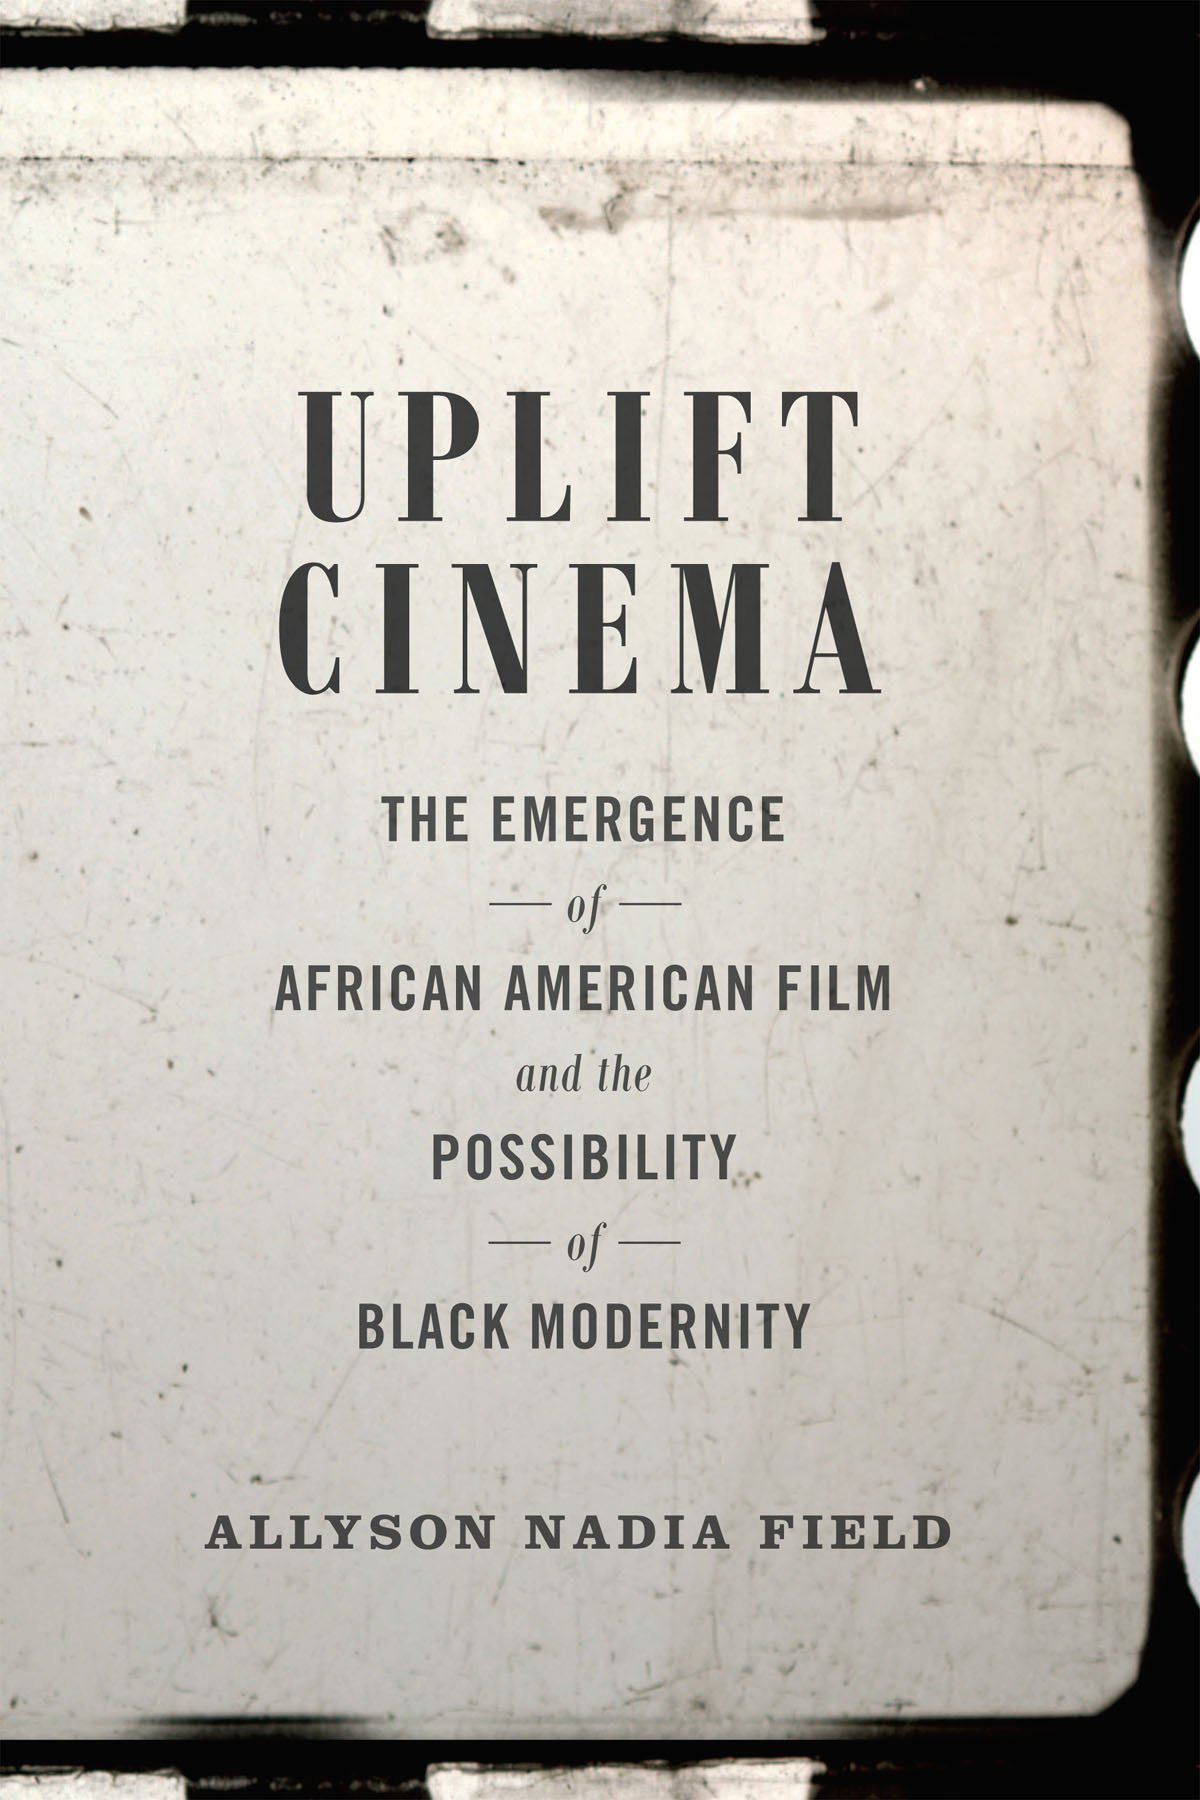 Uplift Cinema book cover